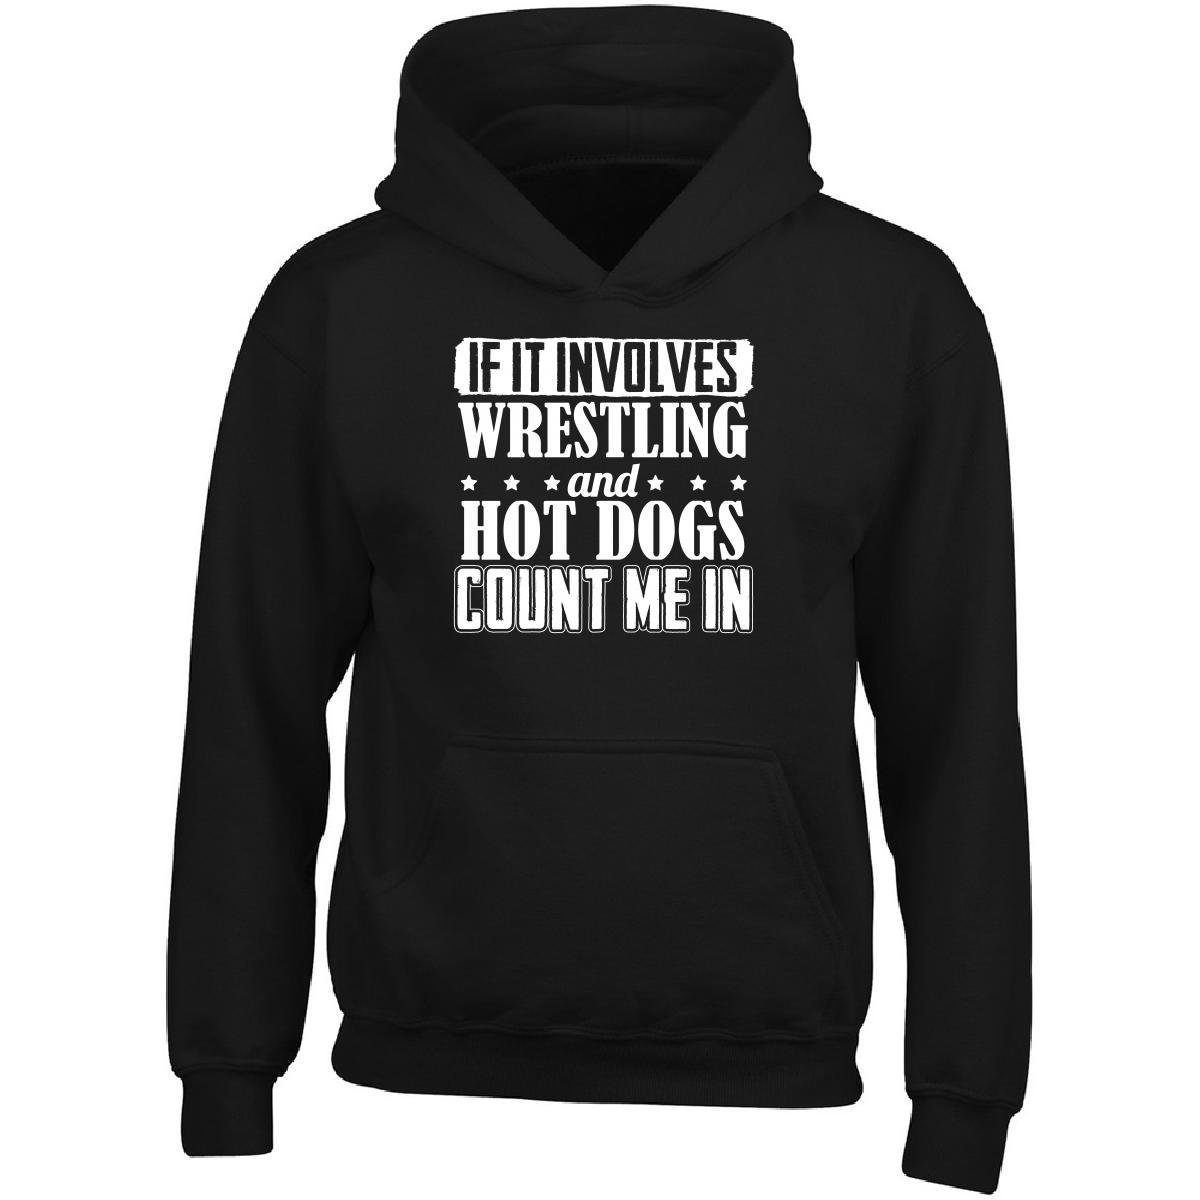 If It Involves Wrestling And Hot Dogs Count Me In - Adult Hoodie L Black by Brands Banned